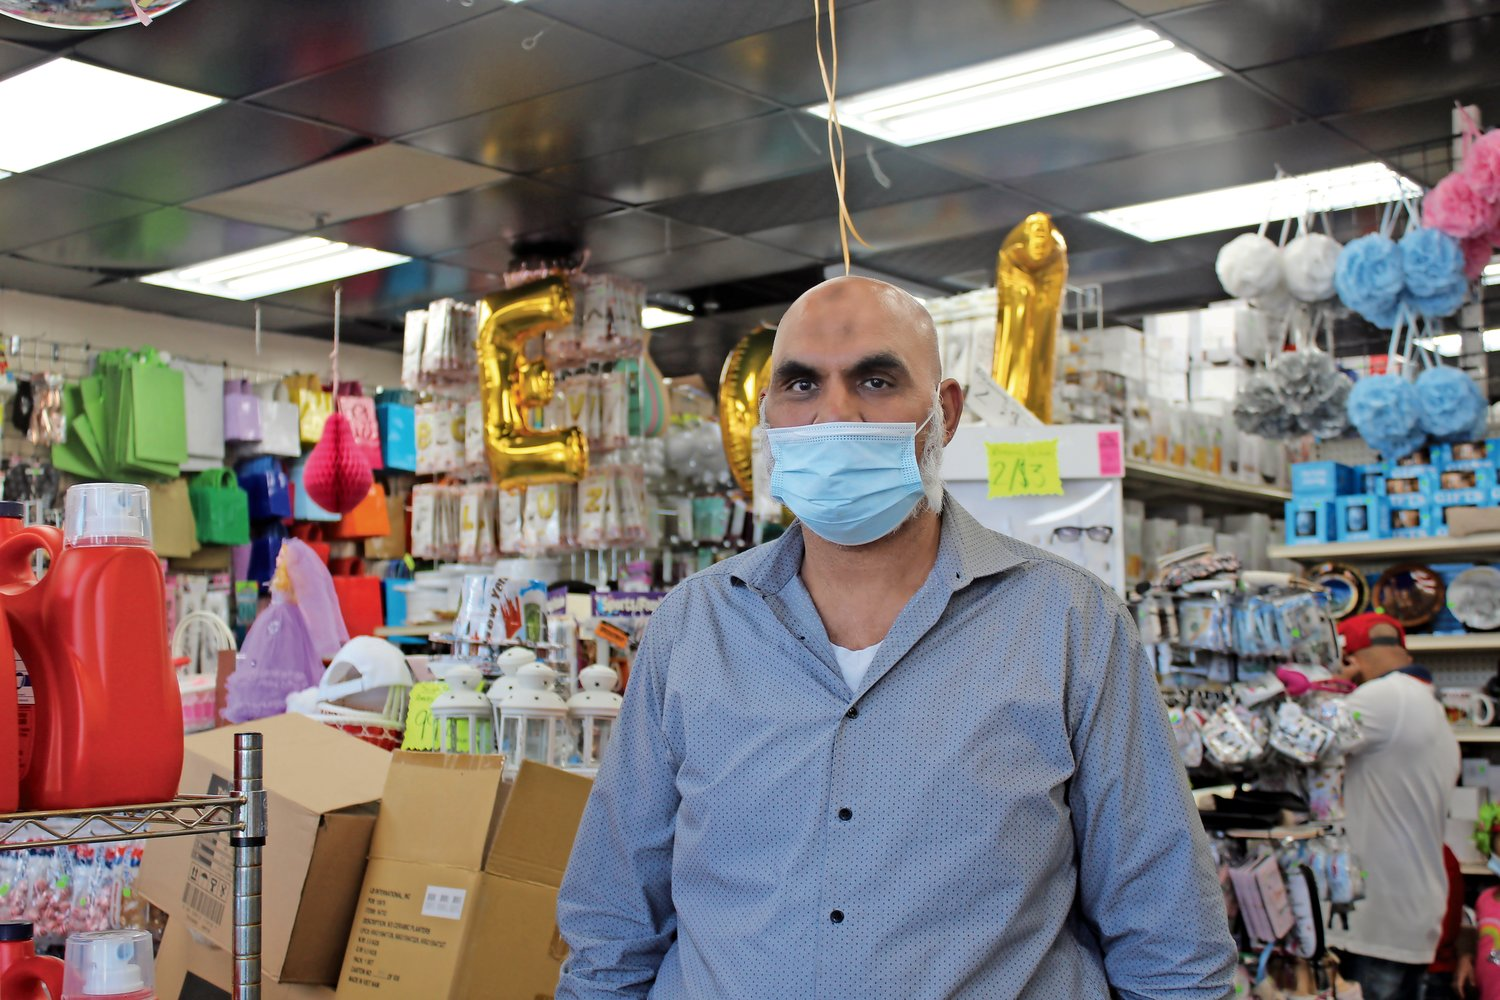 Mohammed Refran, owner of the Real Discount Outlet in Elmont, said it has been difficult to tell people to maintain social-distancing guidelines and wear masks.